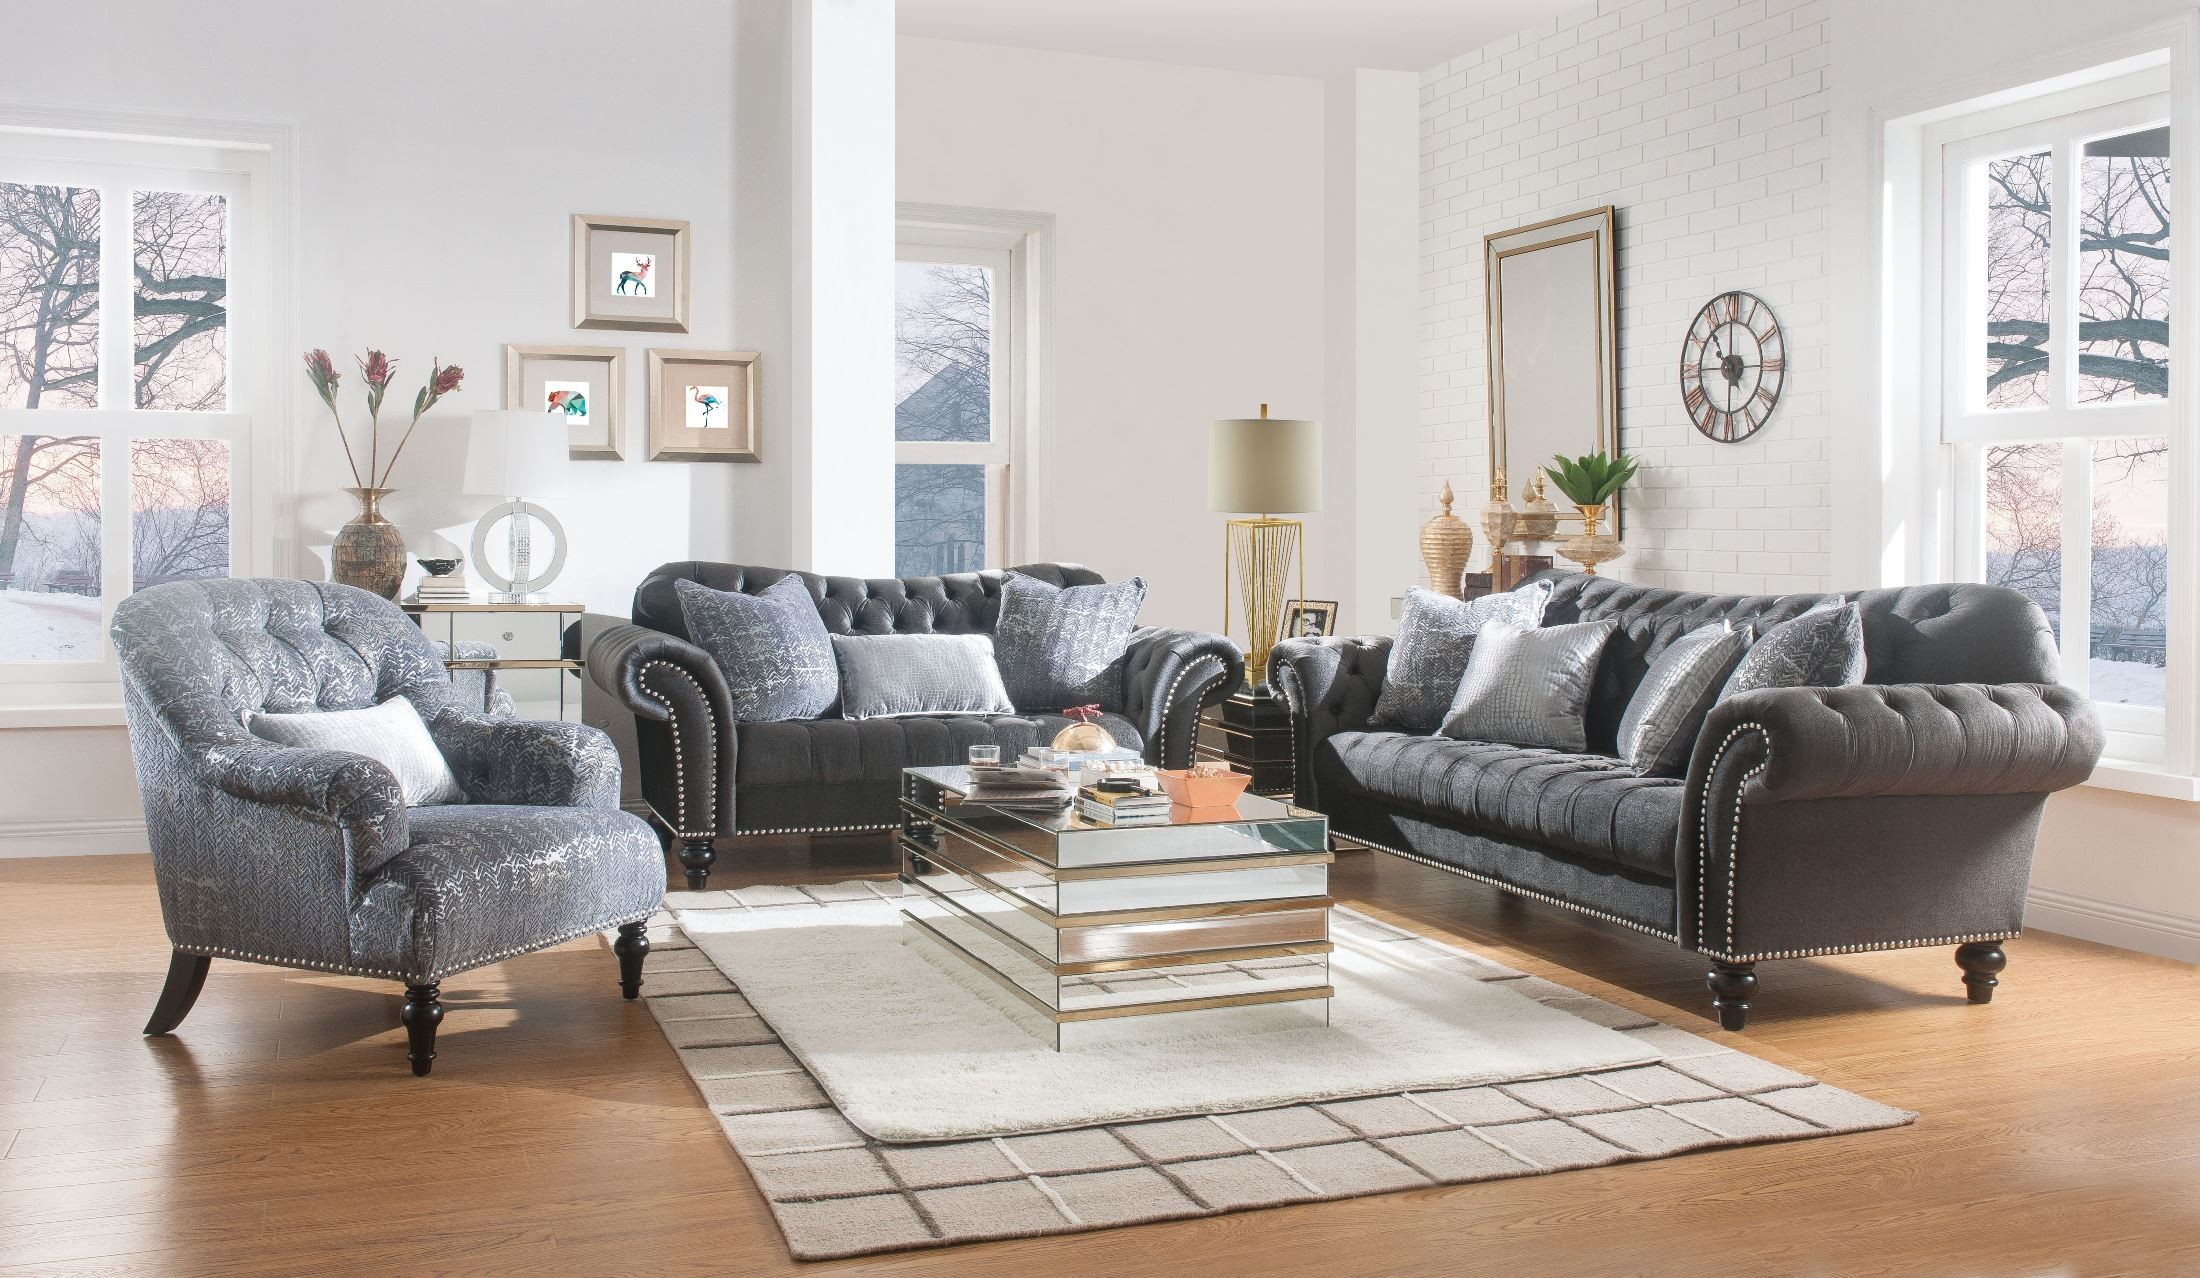 Gaura Dark Gray Living Room Set from ACME Furniture | Coleman Furniture